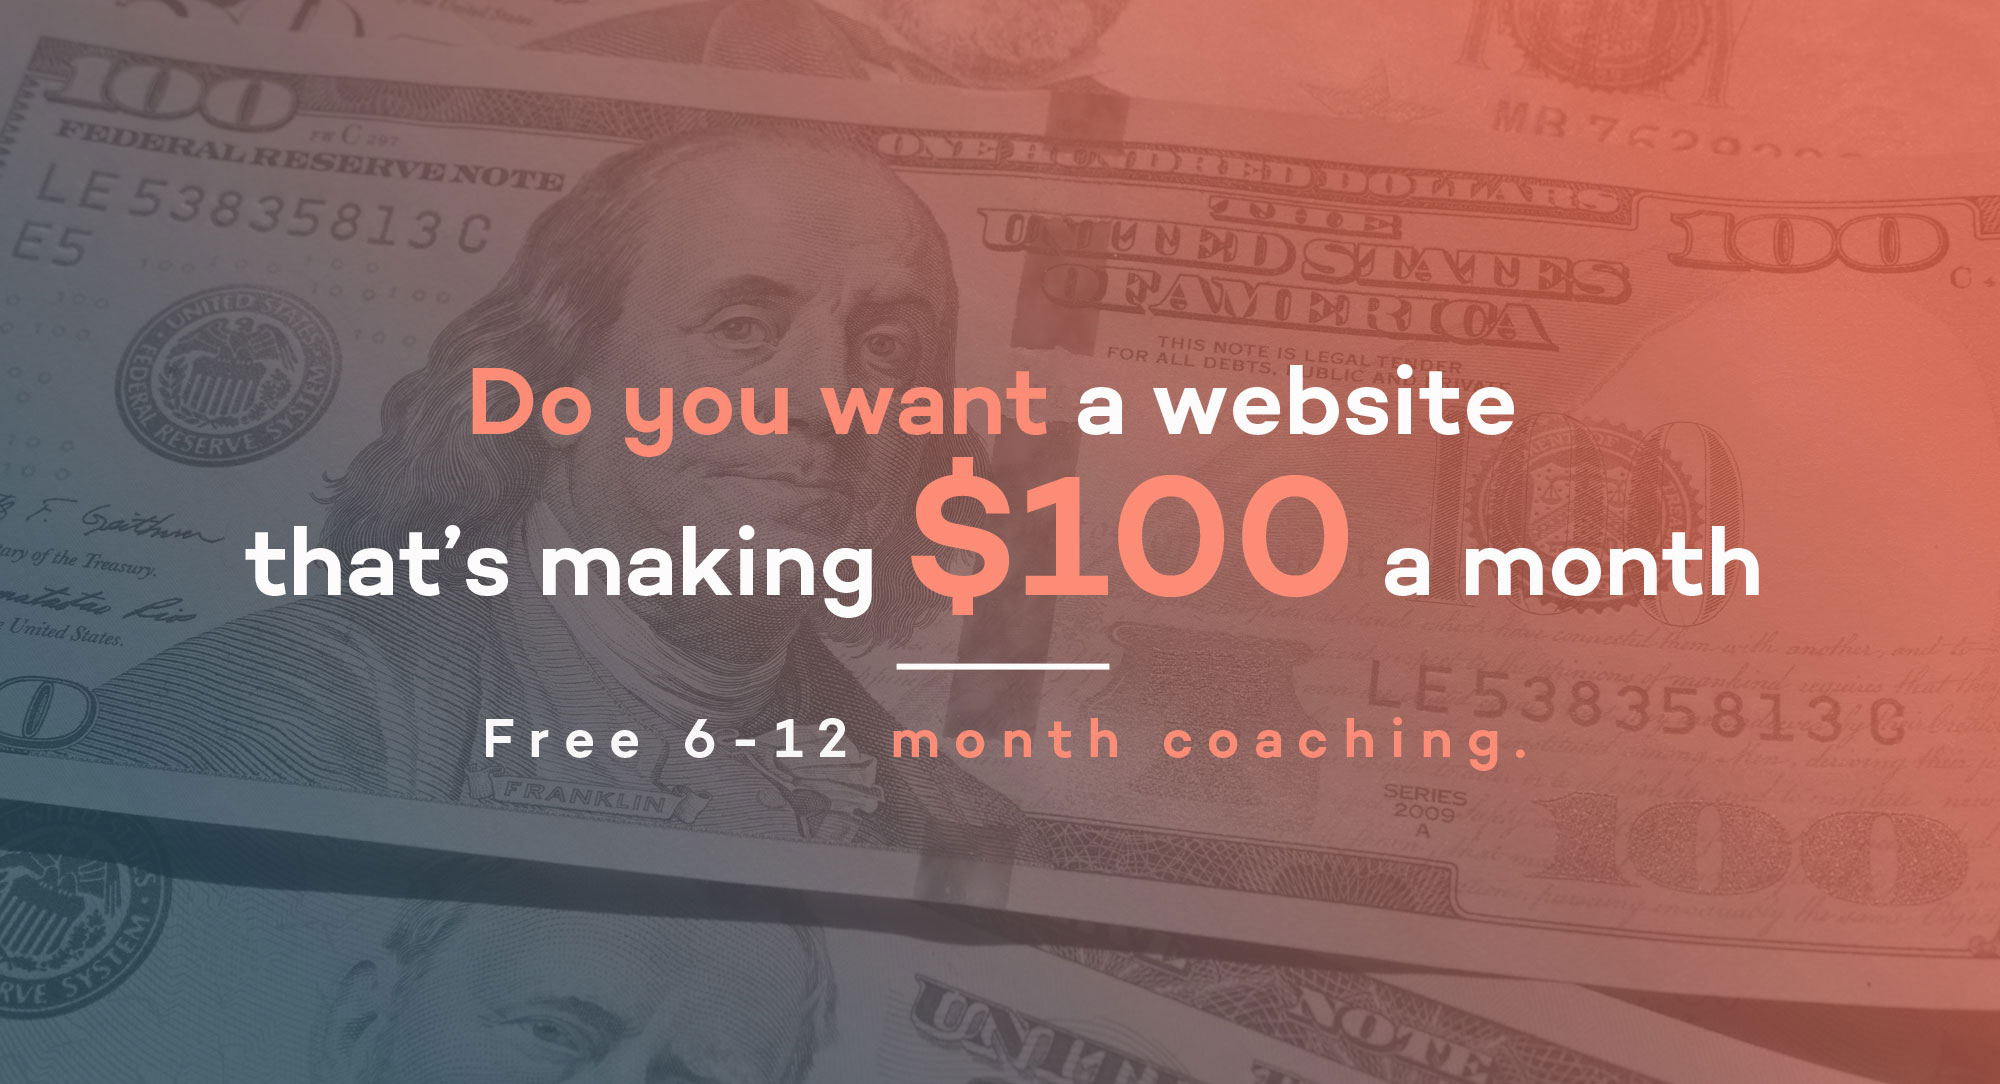 Do-you-want-a-website-that's-making-$100-a-month